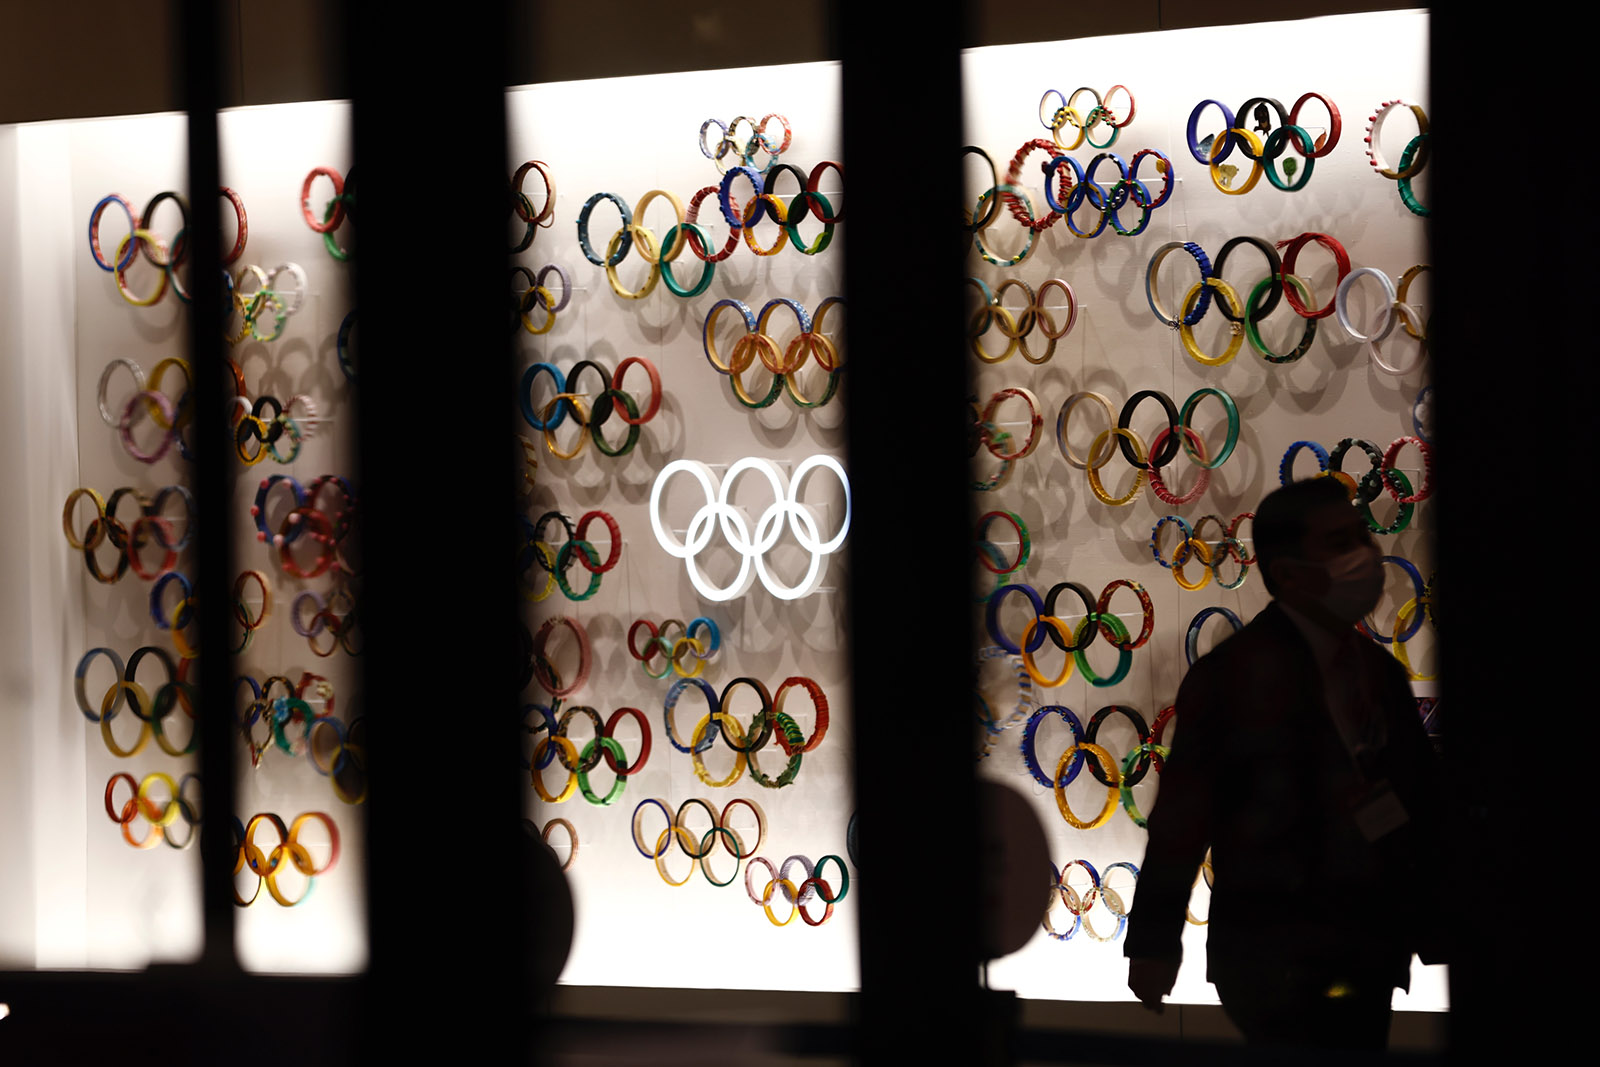 A man wearing a face mask walks past Olympic Rings at the Japan Olympic Museum in Tokyo on January 8, 2021.